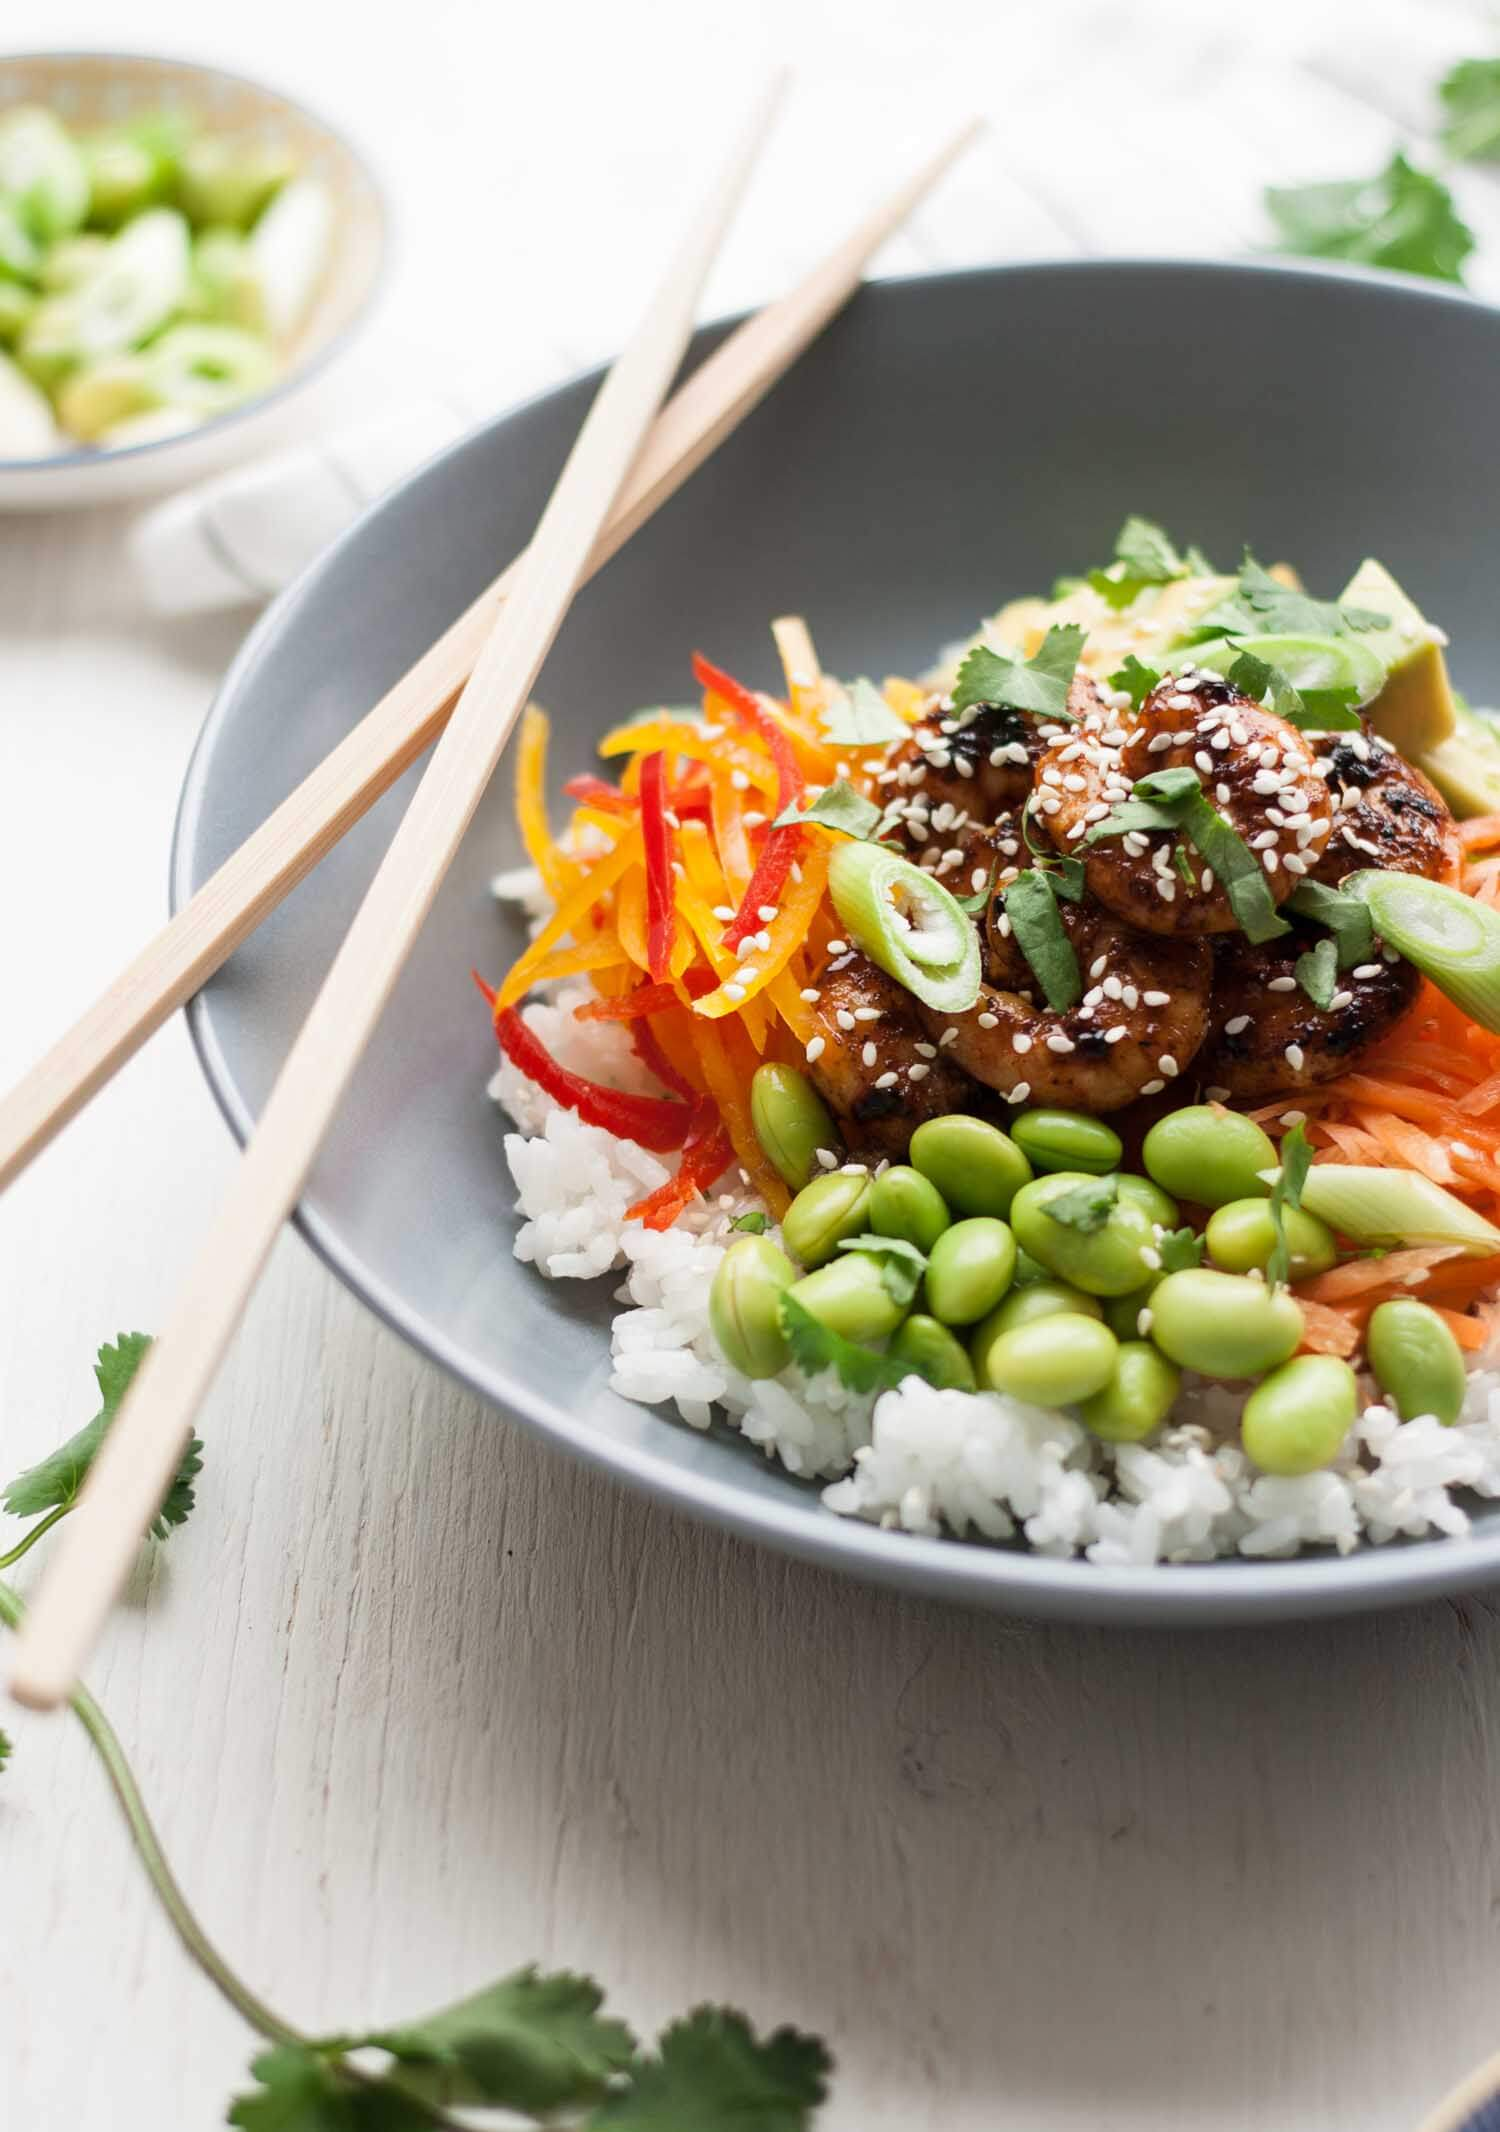 Sticky Rice Salad with Spicy Prawns - this simple recipe combines sticky sushi rice, fresh veggies and spicy prawns for a healthy and flavoursome lunch dish! | eatloveeats.com